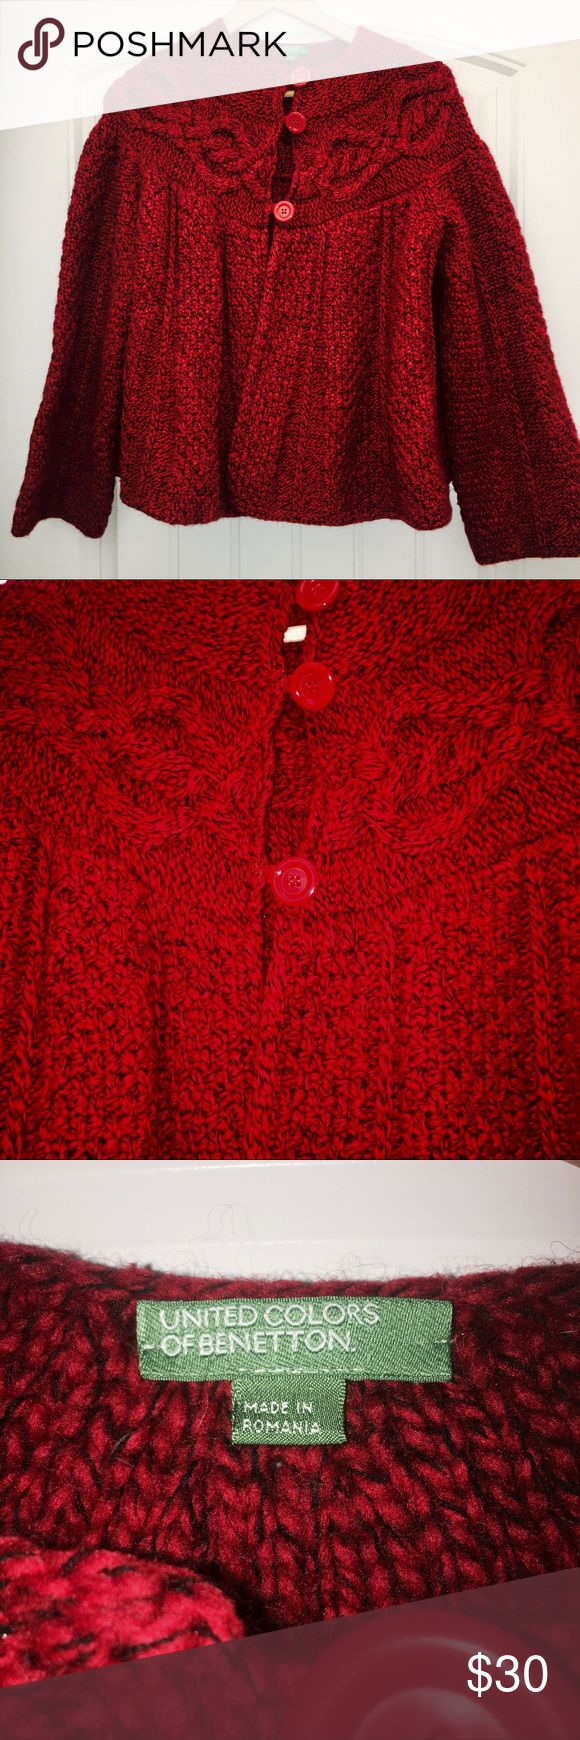 "United Color of Benetton Knit Sweater Red/Blk M Sweater has 3 Buttons and is Beautifully Made. Mint Condition with No Rips or Stains  * Chest: 25"" * Length: 24"" * Fabric: 50% Lana Wool/ 50% Acrylic  * Colors: Red/Black United Colors Of Benetton Sweaters Shrugs & Ponchos"